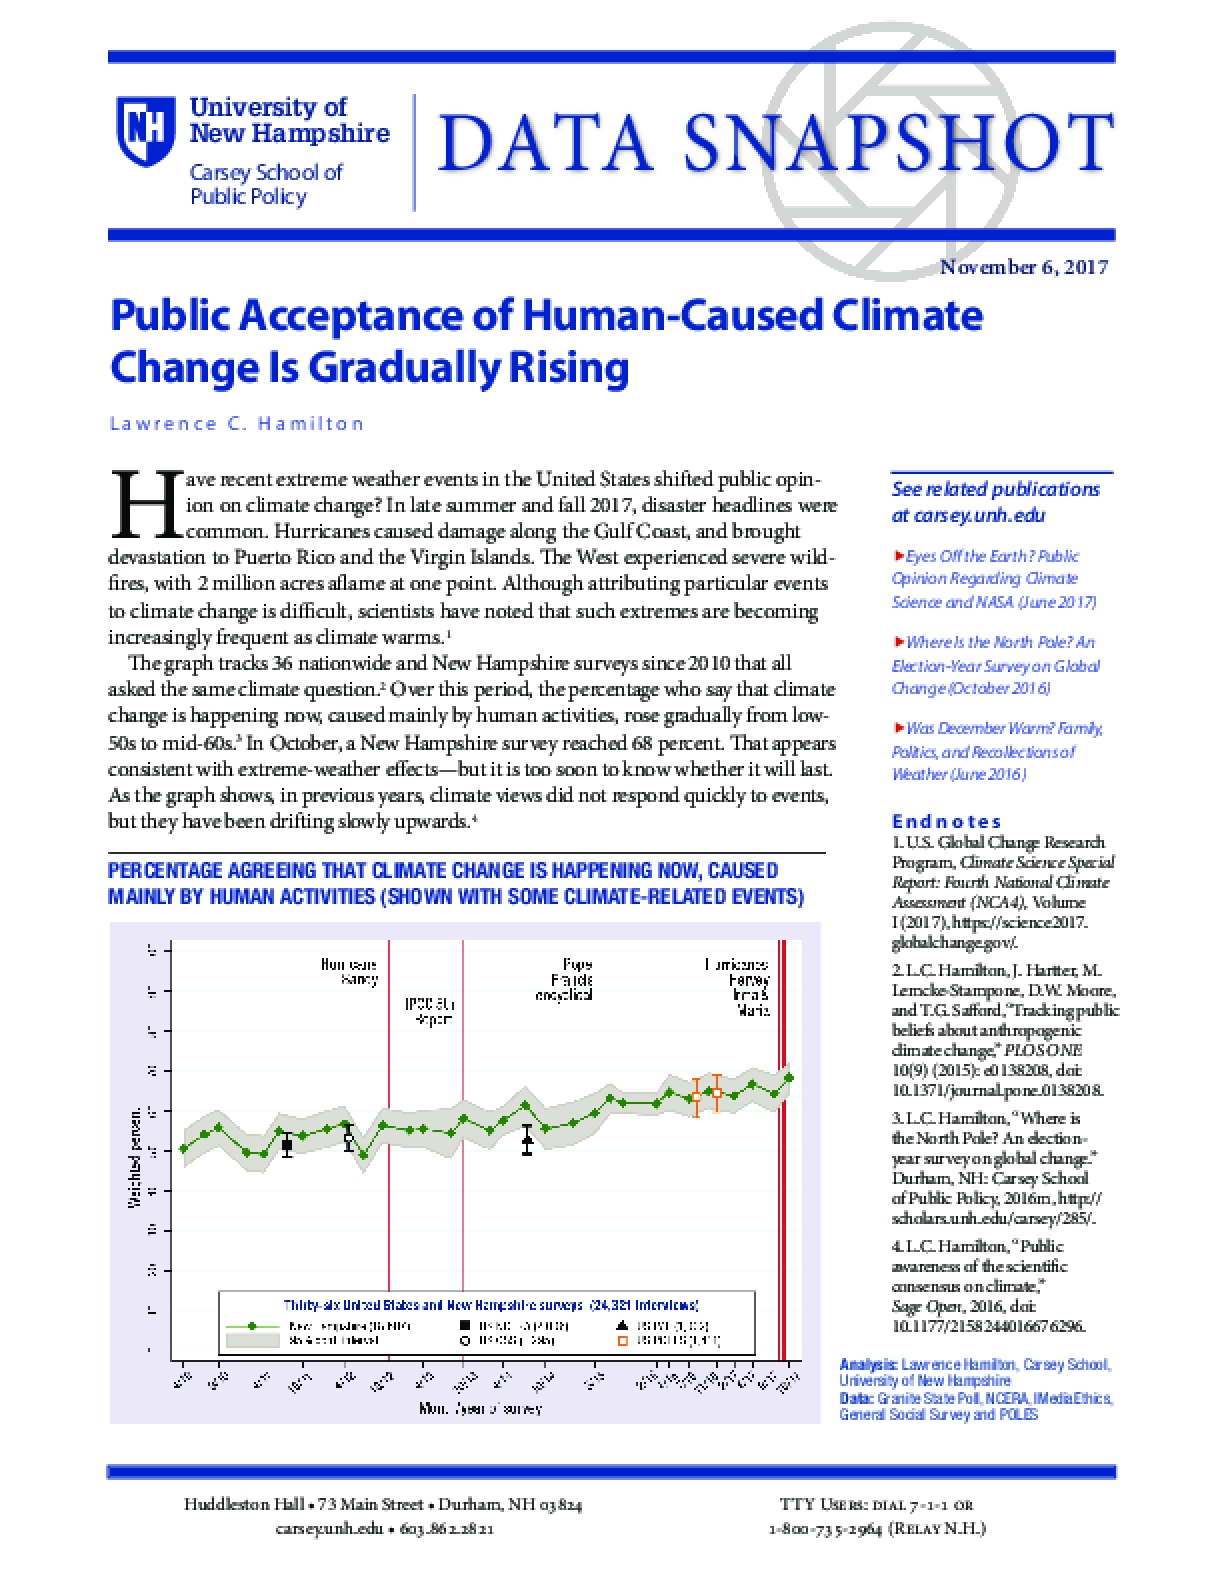 Data Snapshot: Public Acceptance of Human-Caused Climate Change Is Gradually Rising